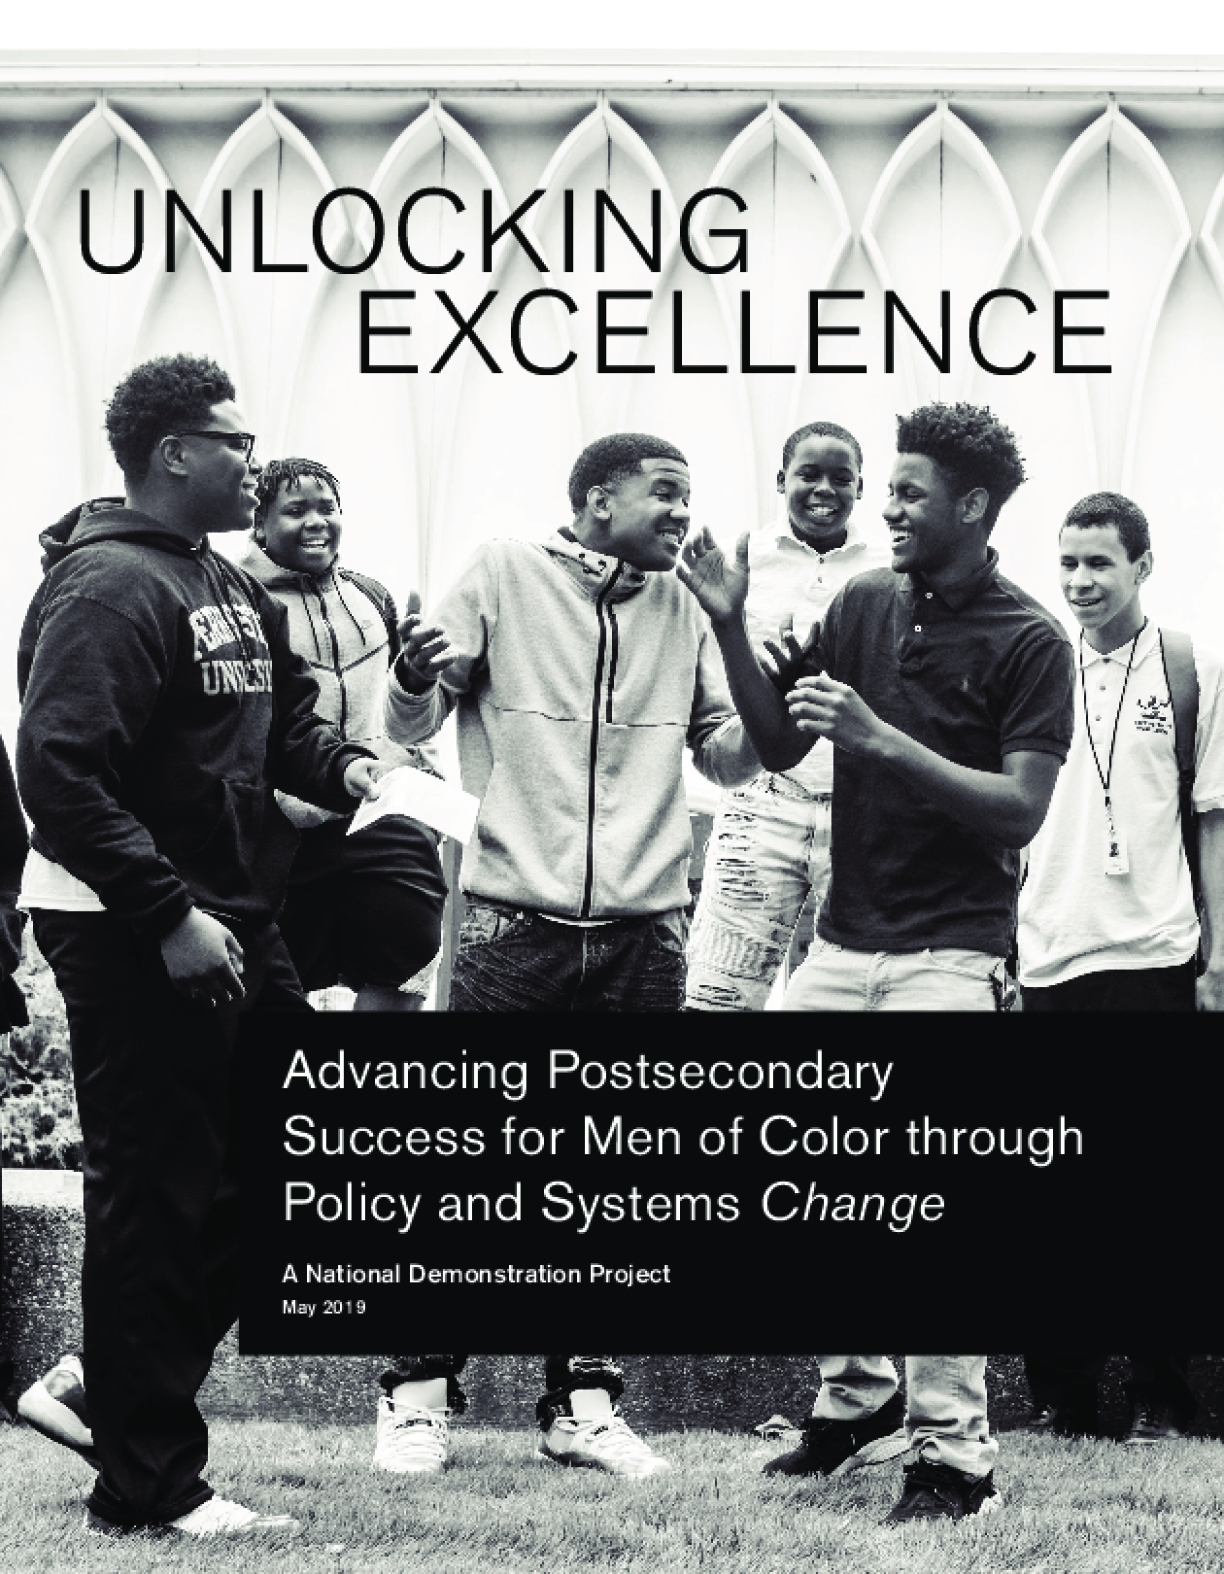 Advancing Postsecondary Success for Men of Color through Policy and Systems Change